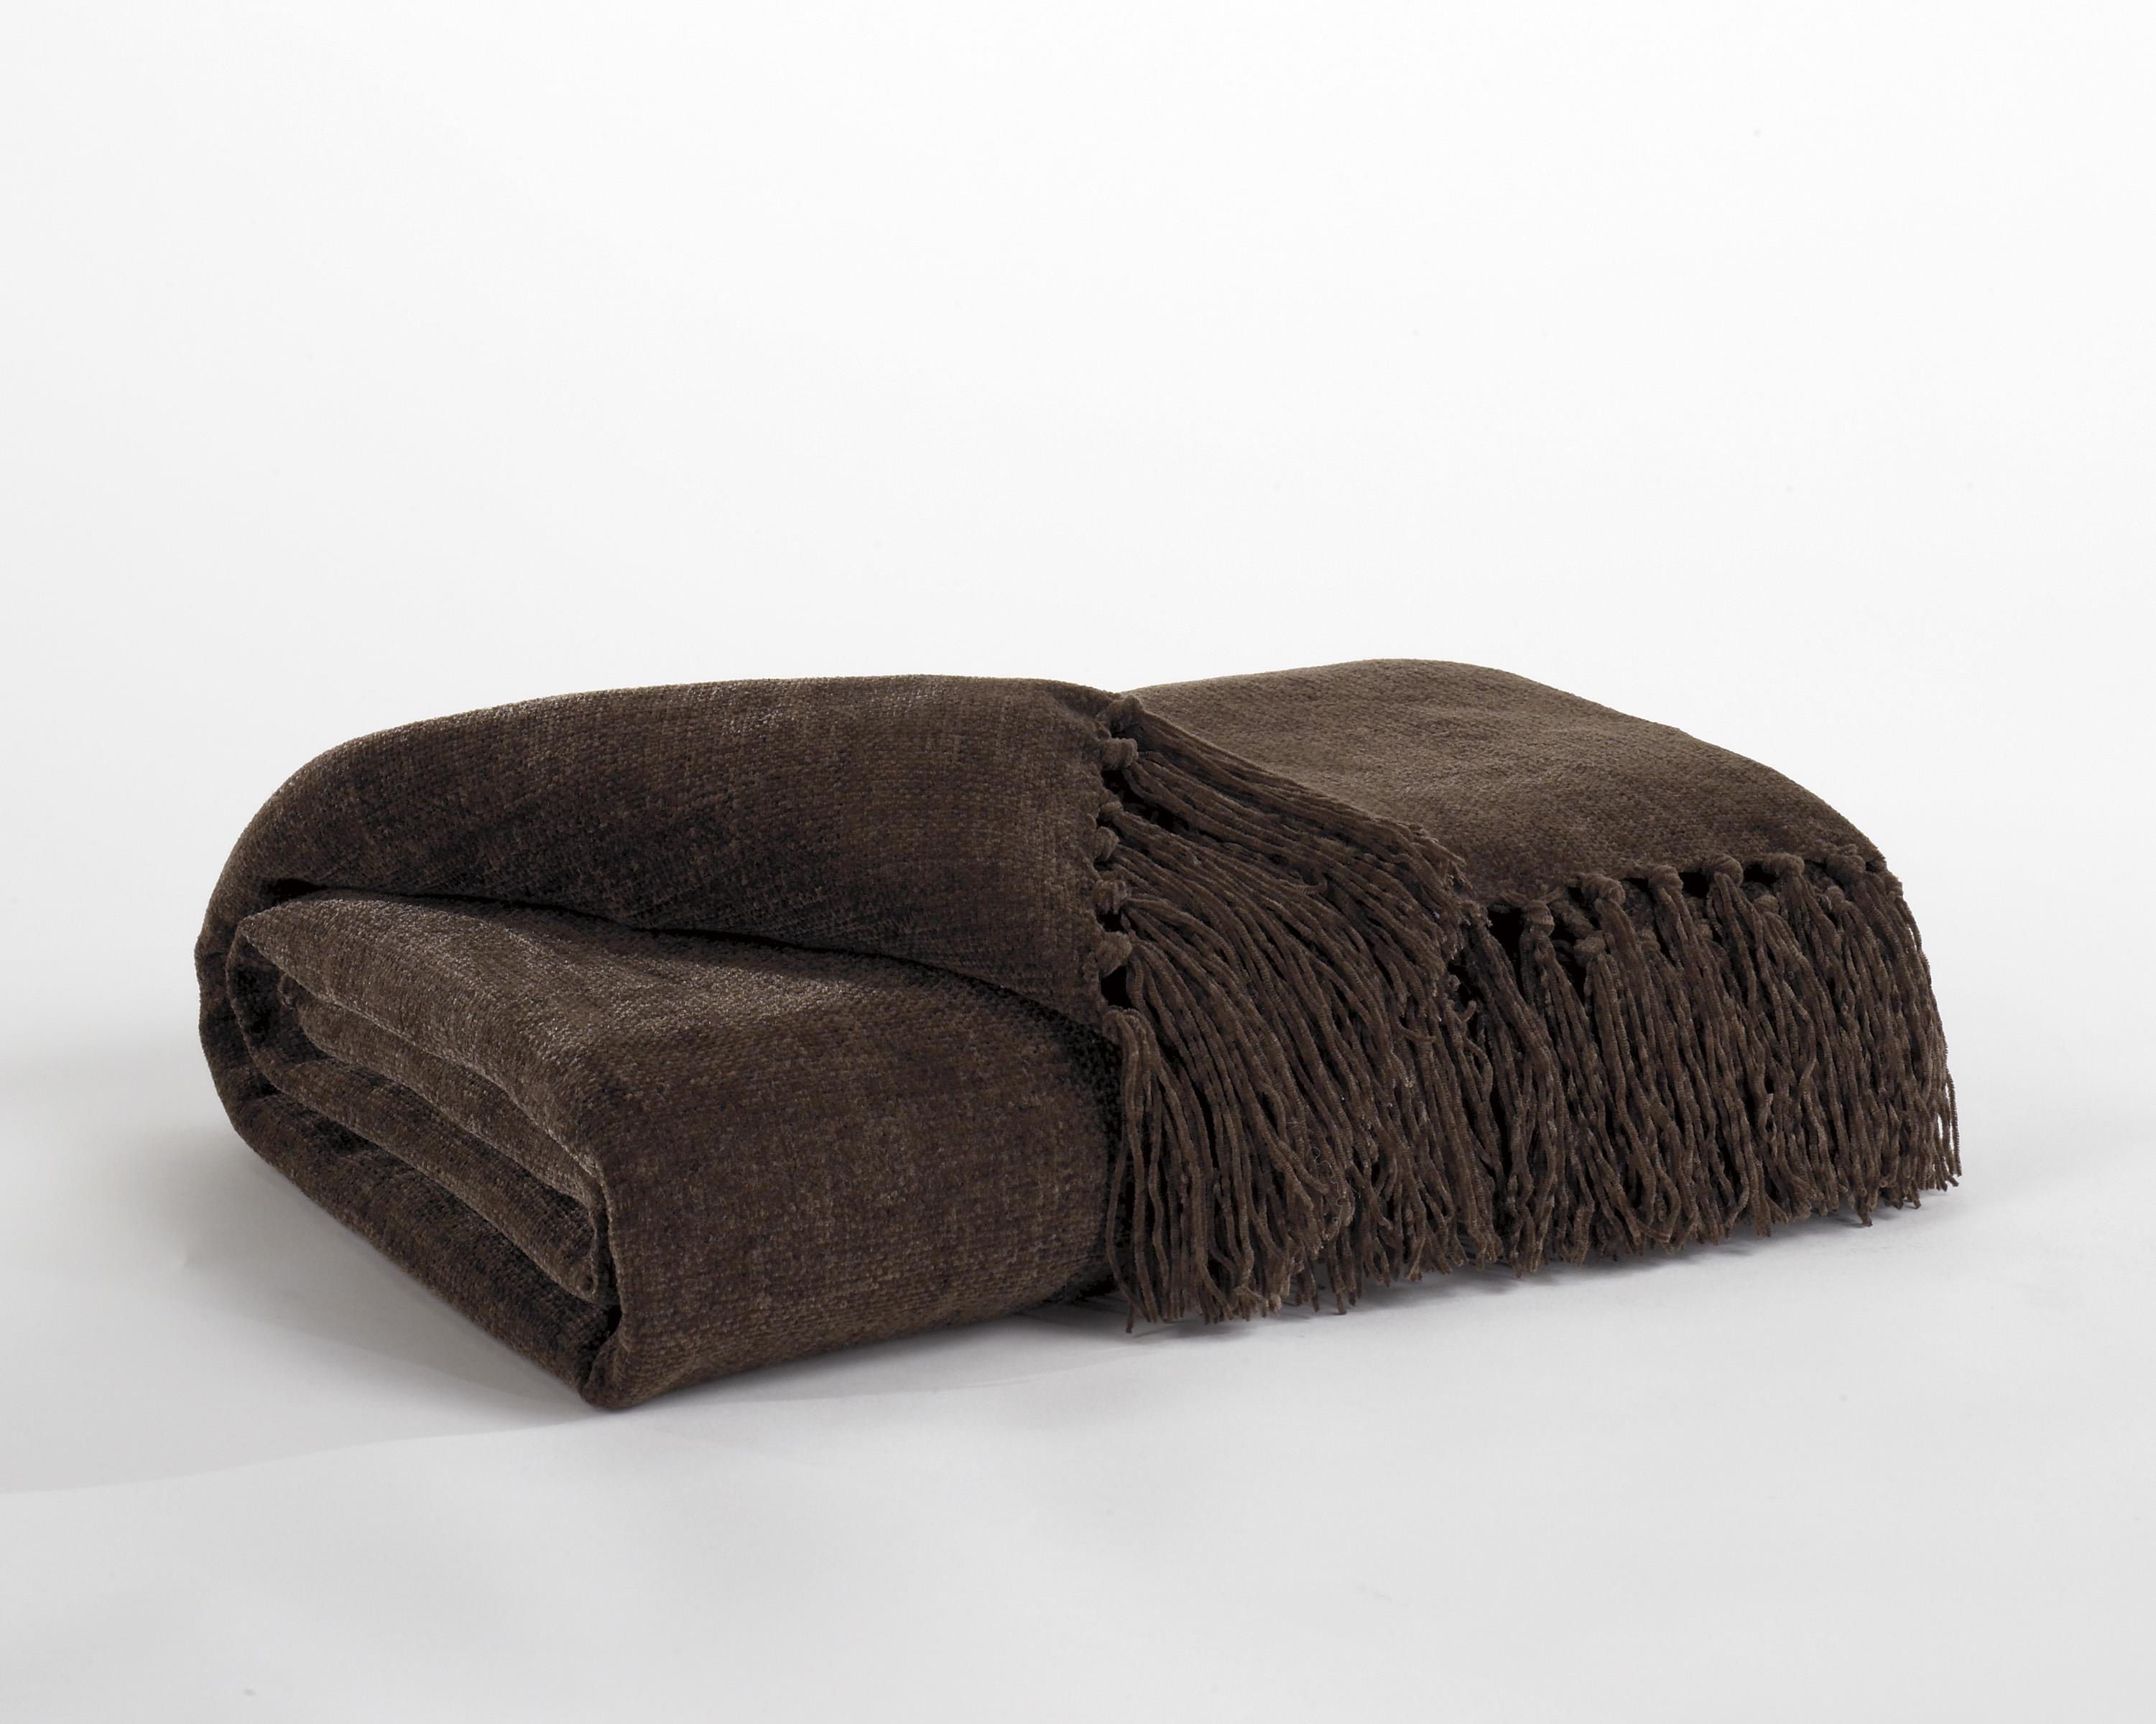 Signature Design by Ashley Throws Revere - Espresso Throw - Item Number: A1000031T